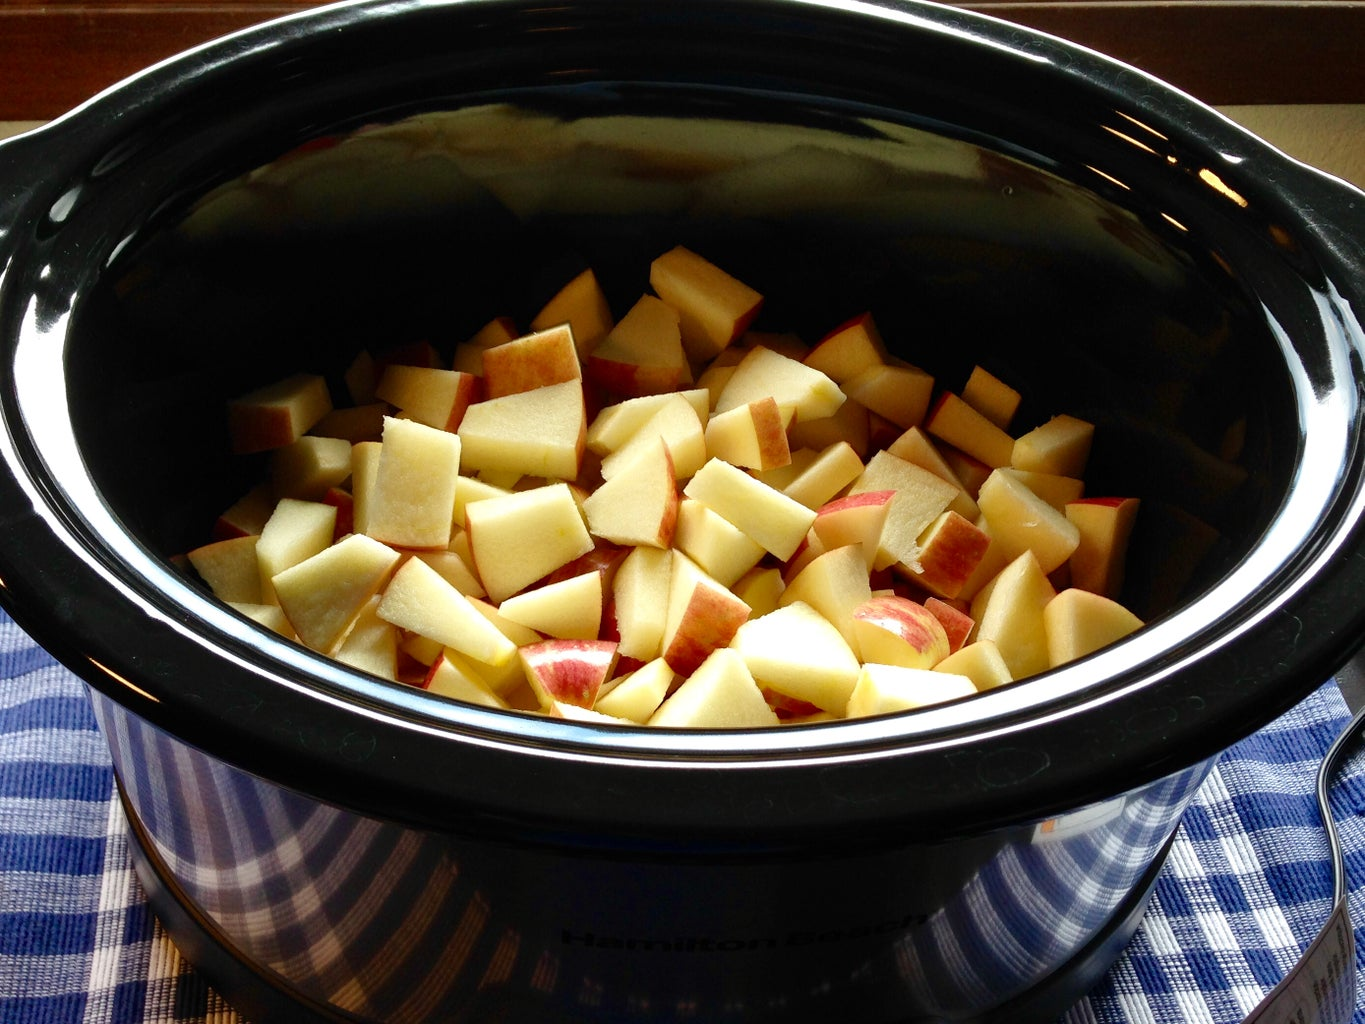 Prepare Apples for the Slow Cooker